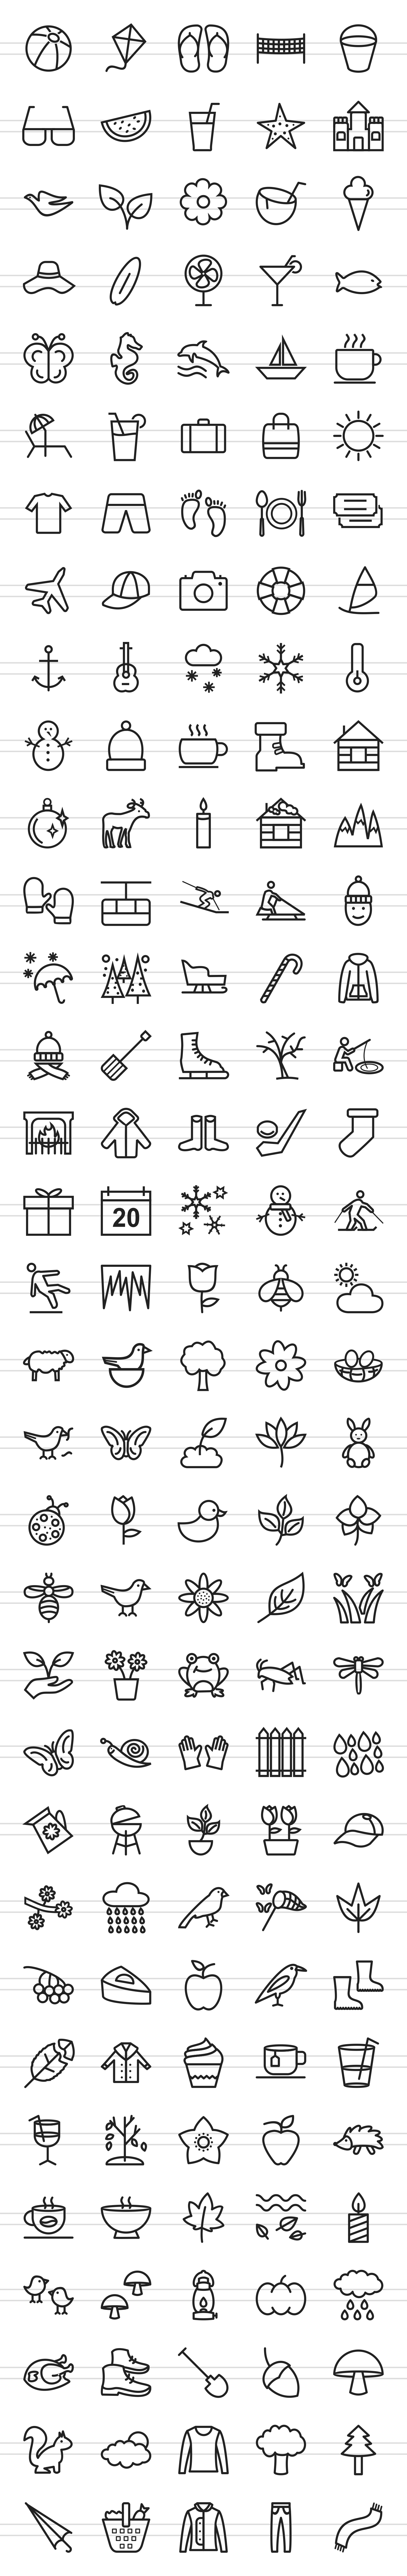 166 Four Seasons Line Icons example image 2